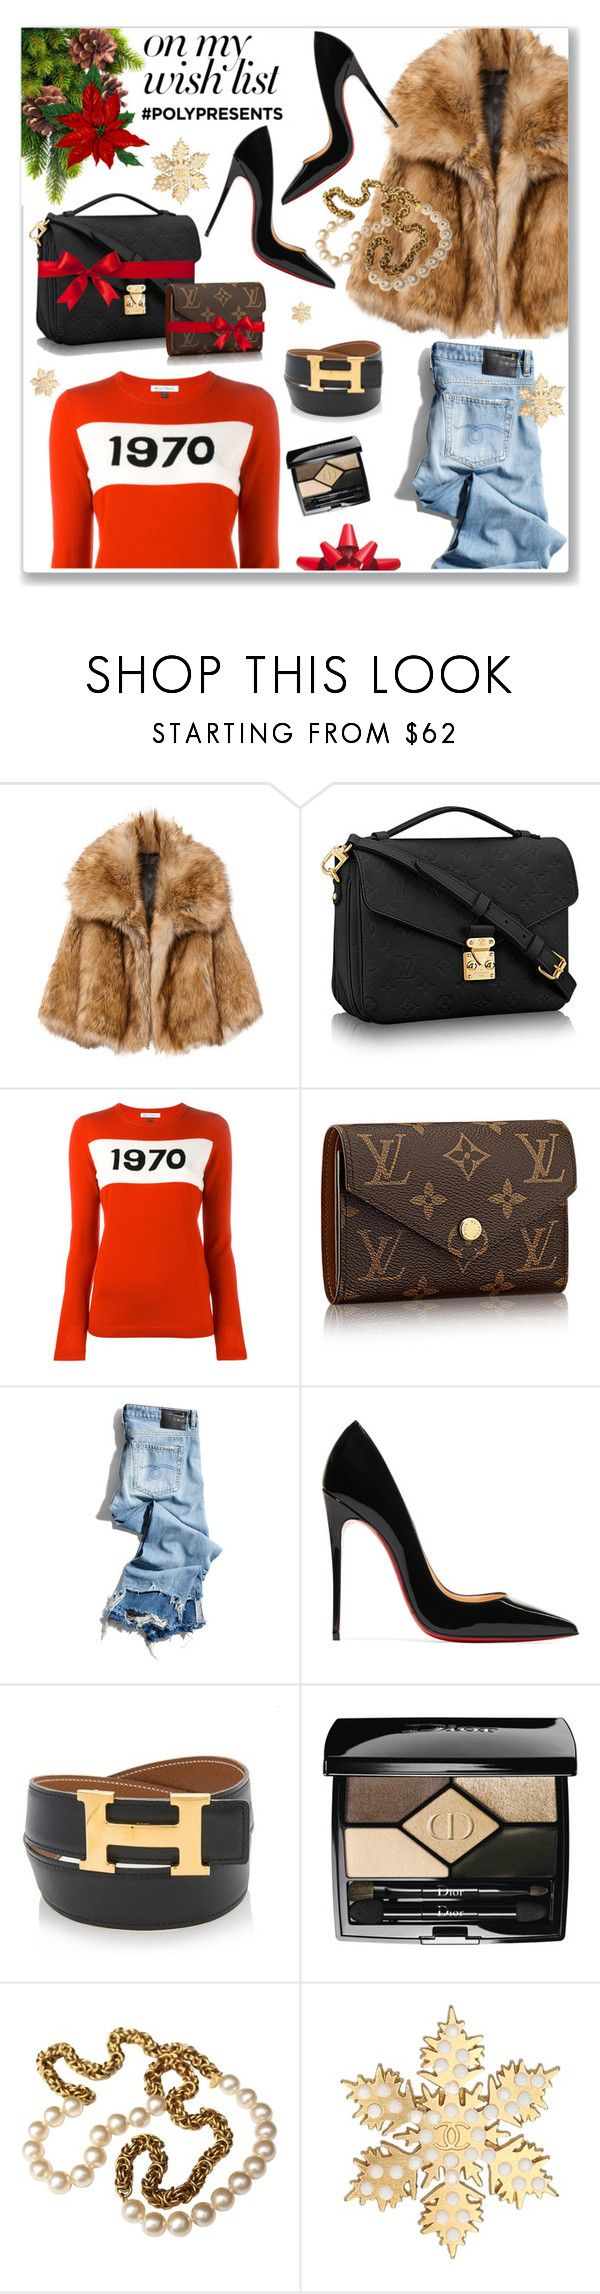 """#PolyPresents: Wish List"" by hellodollface ❤ liked on Polyvore featuring Bella Freud, R13, Christian Louboutin, Hermès, Christian Dior, Chanel, Martha Stewart, contestentry and polyPresents"